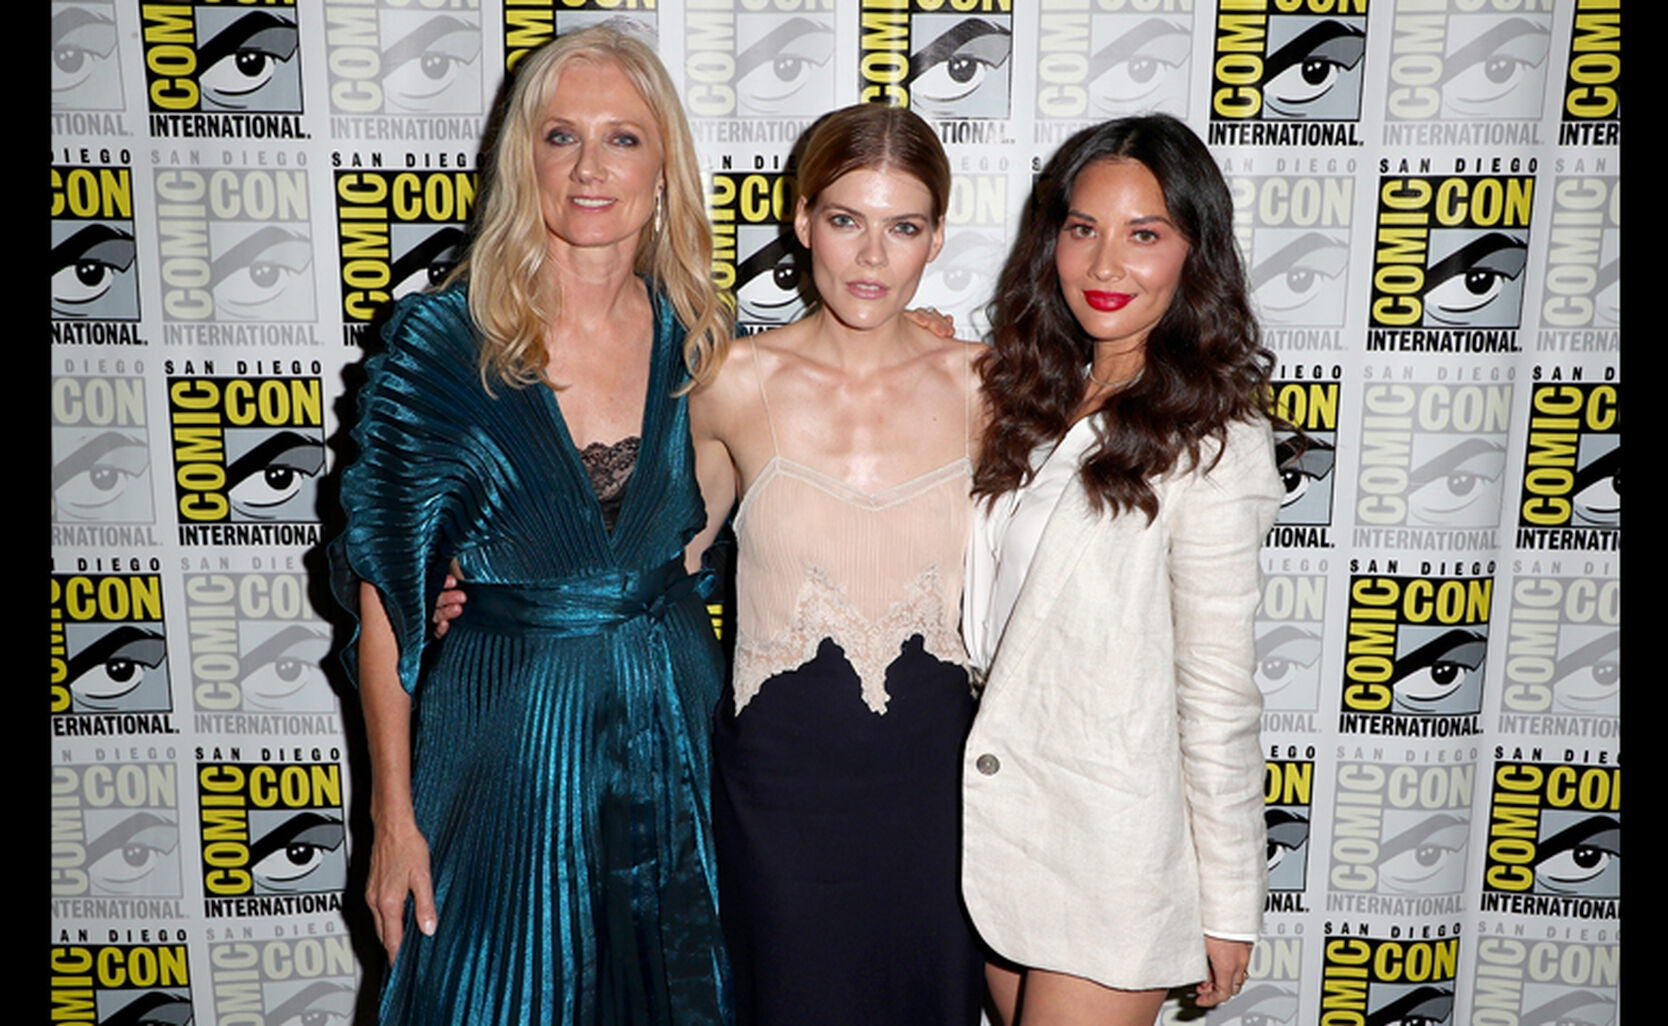 Cast of the TV Series The Rook at Comic-Con 2019